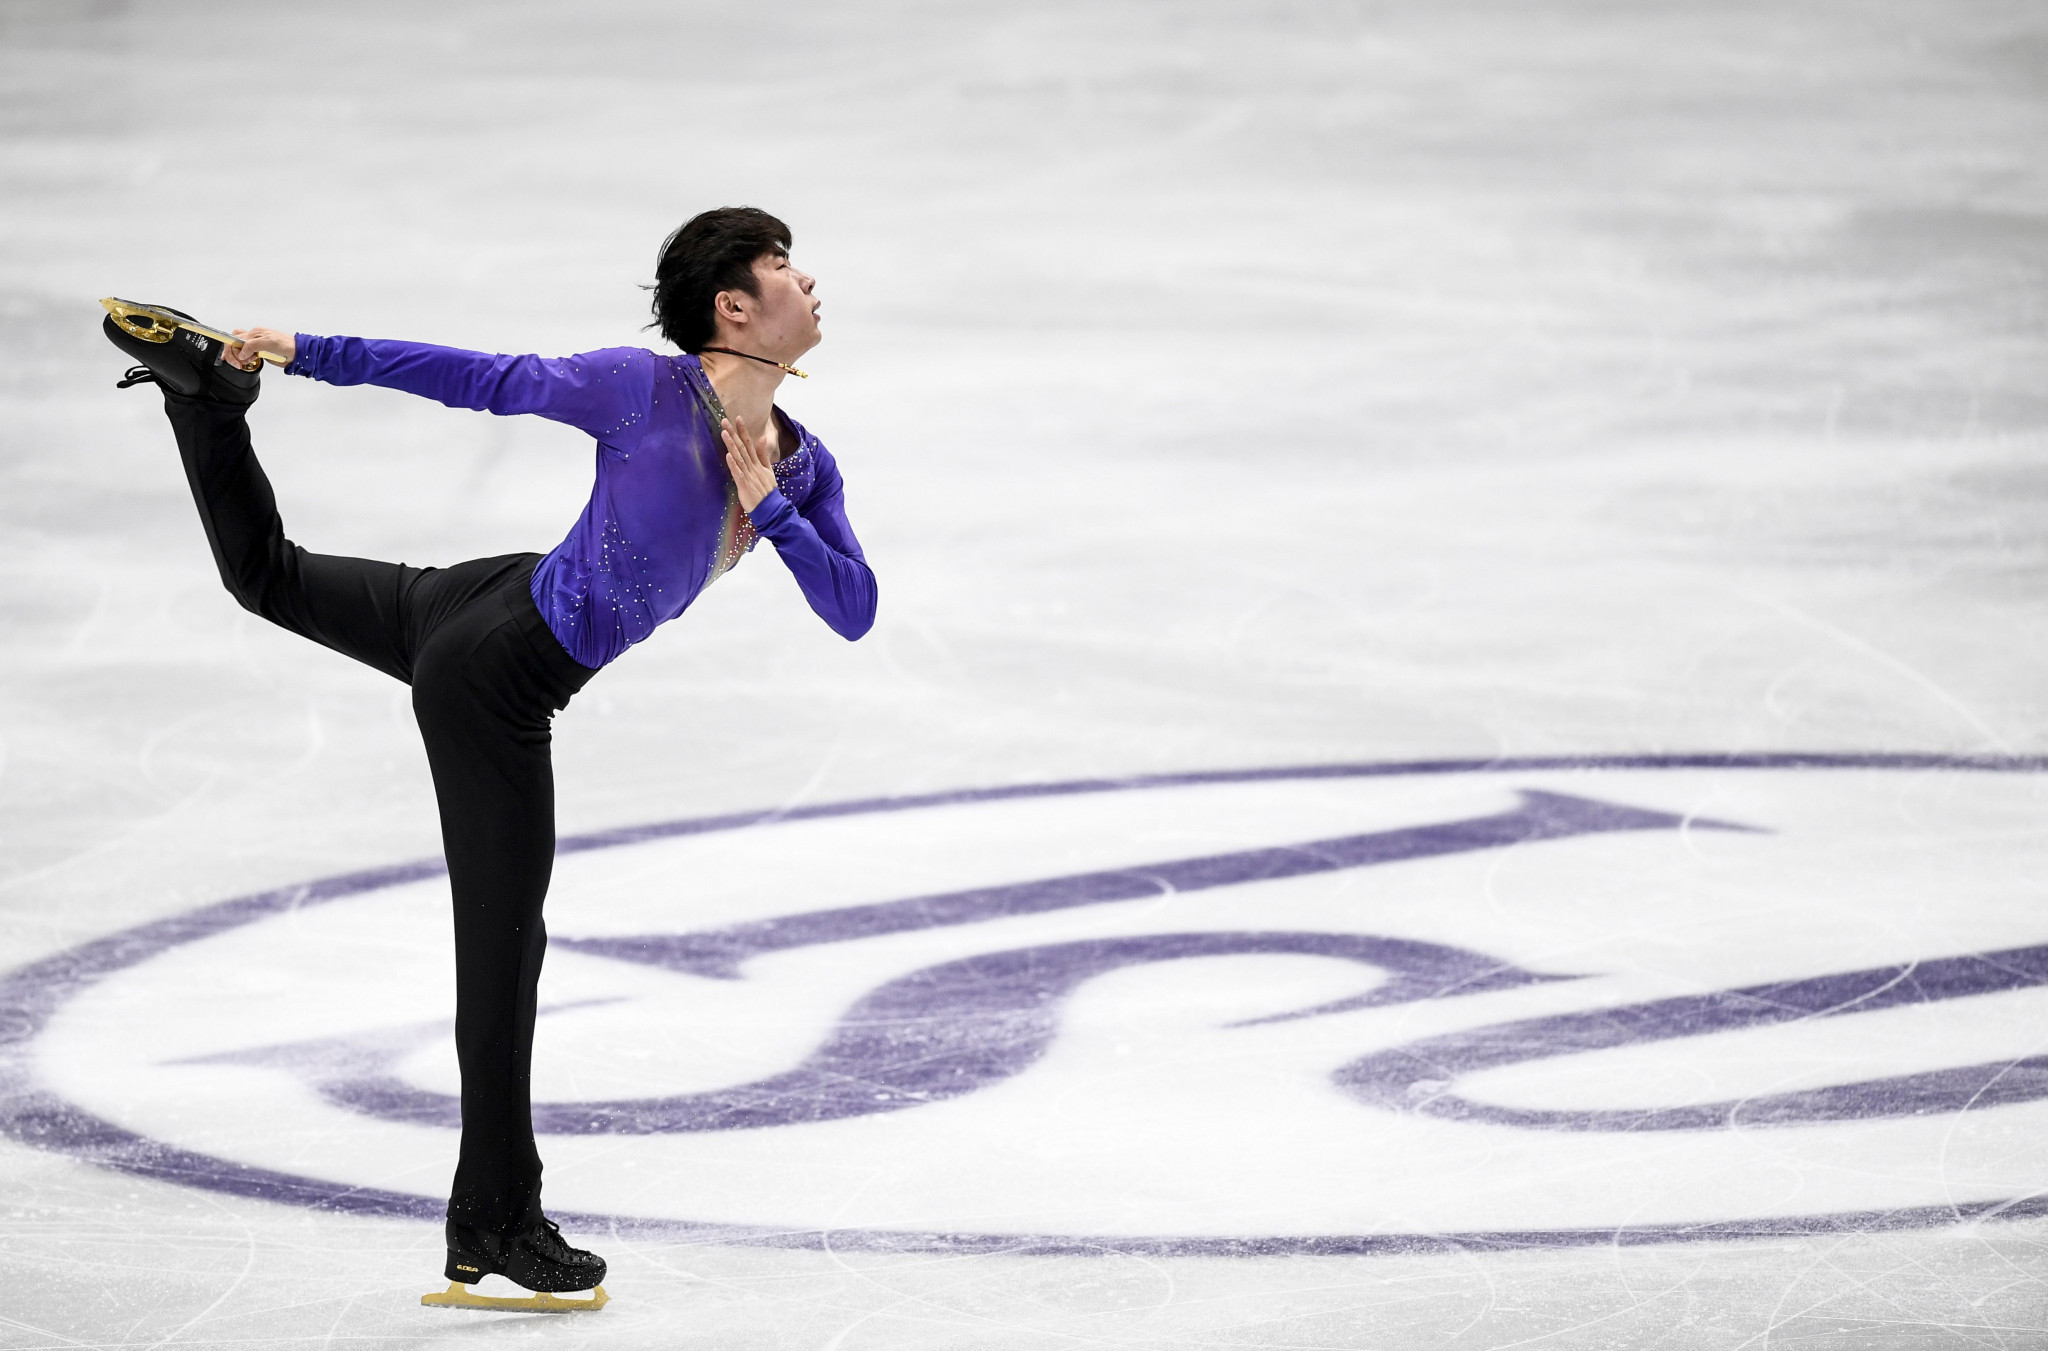 Major figure skating event in China two weeks before Winter Olympics axed over COVID-19